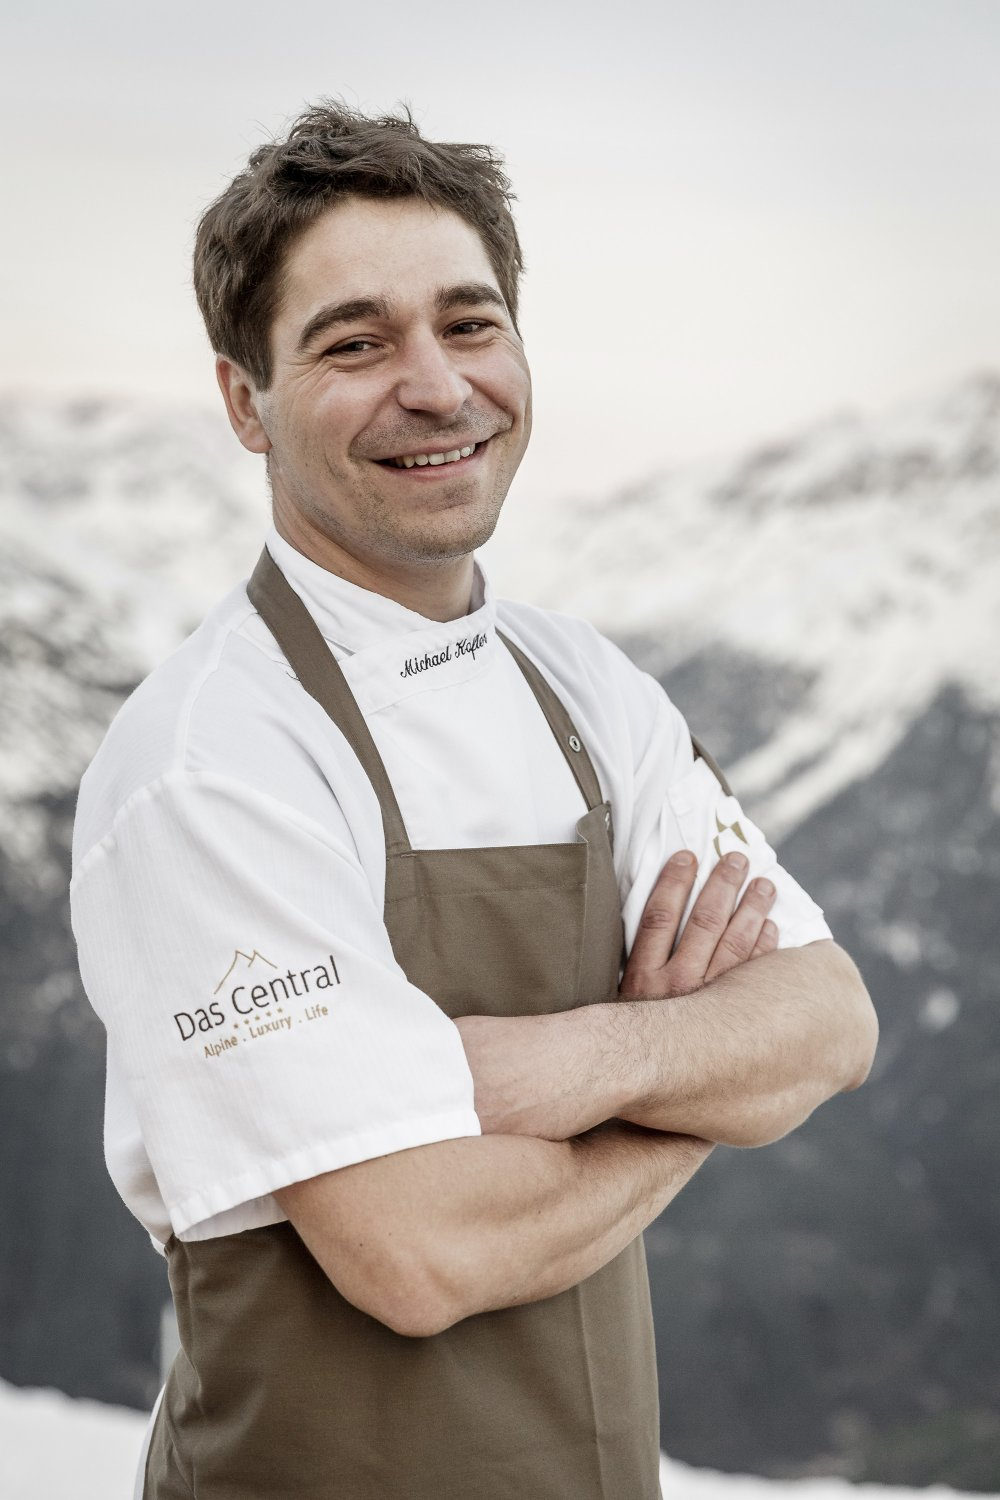 Michael Kofler - chef at the 5-star hotel DAS CENTRAL in Solden, Tyrol